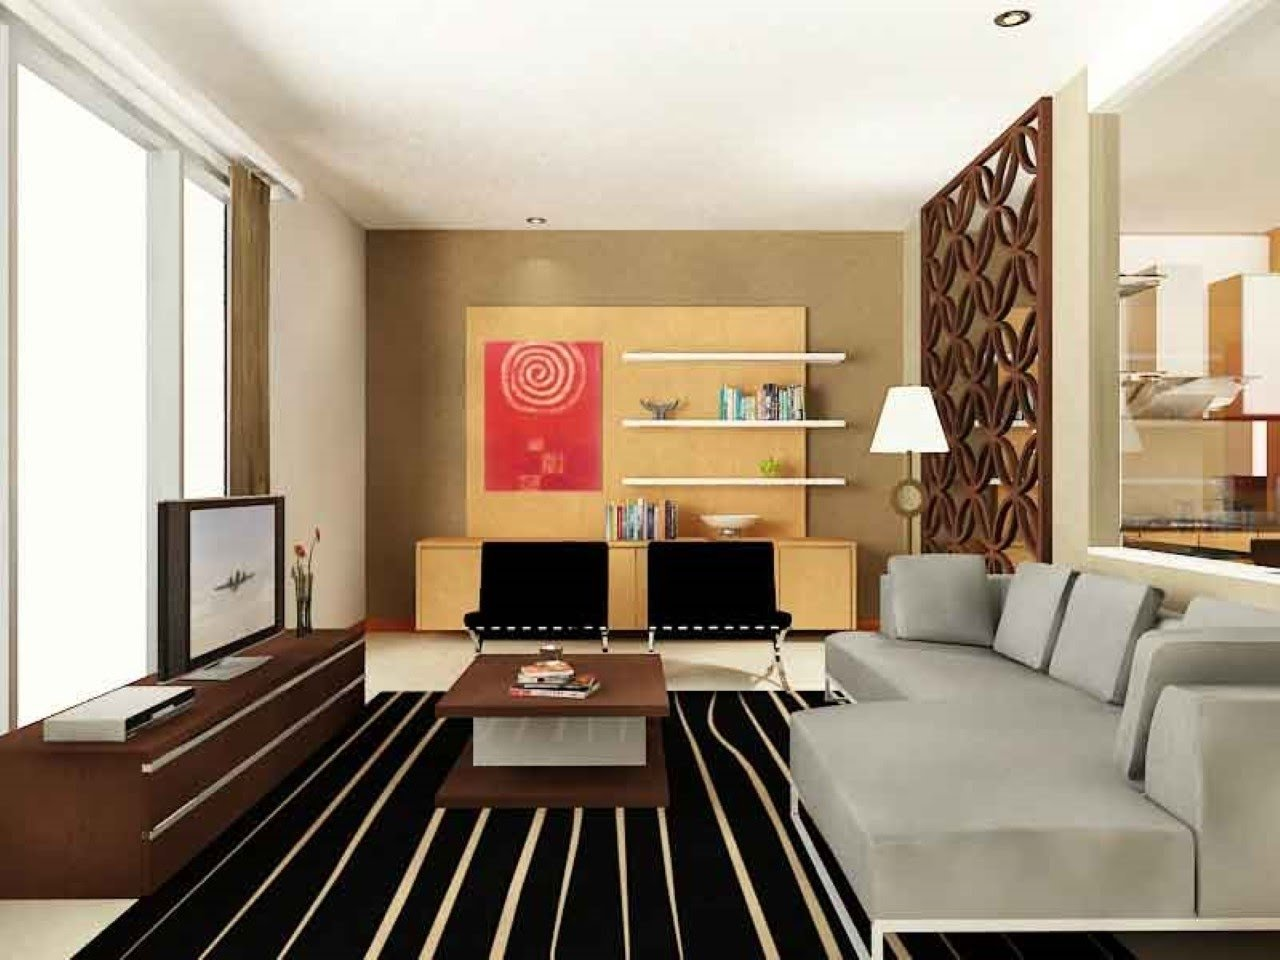 10 Wonderful L Shaped Living Room Ideas free gallery of l shaped living room 0 33771 2020